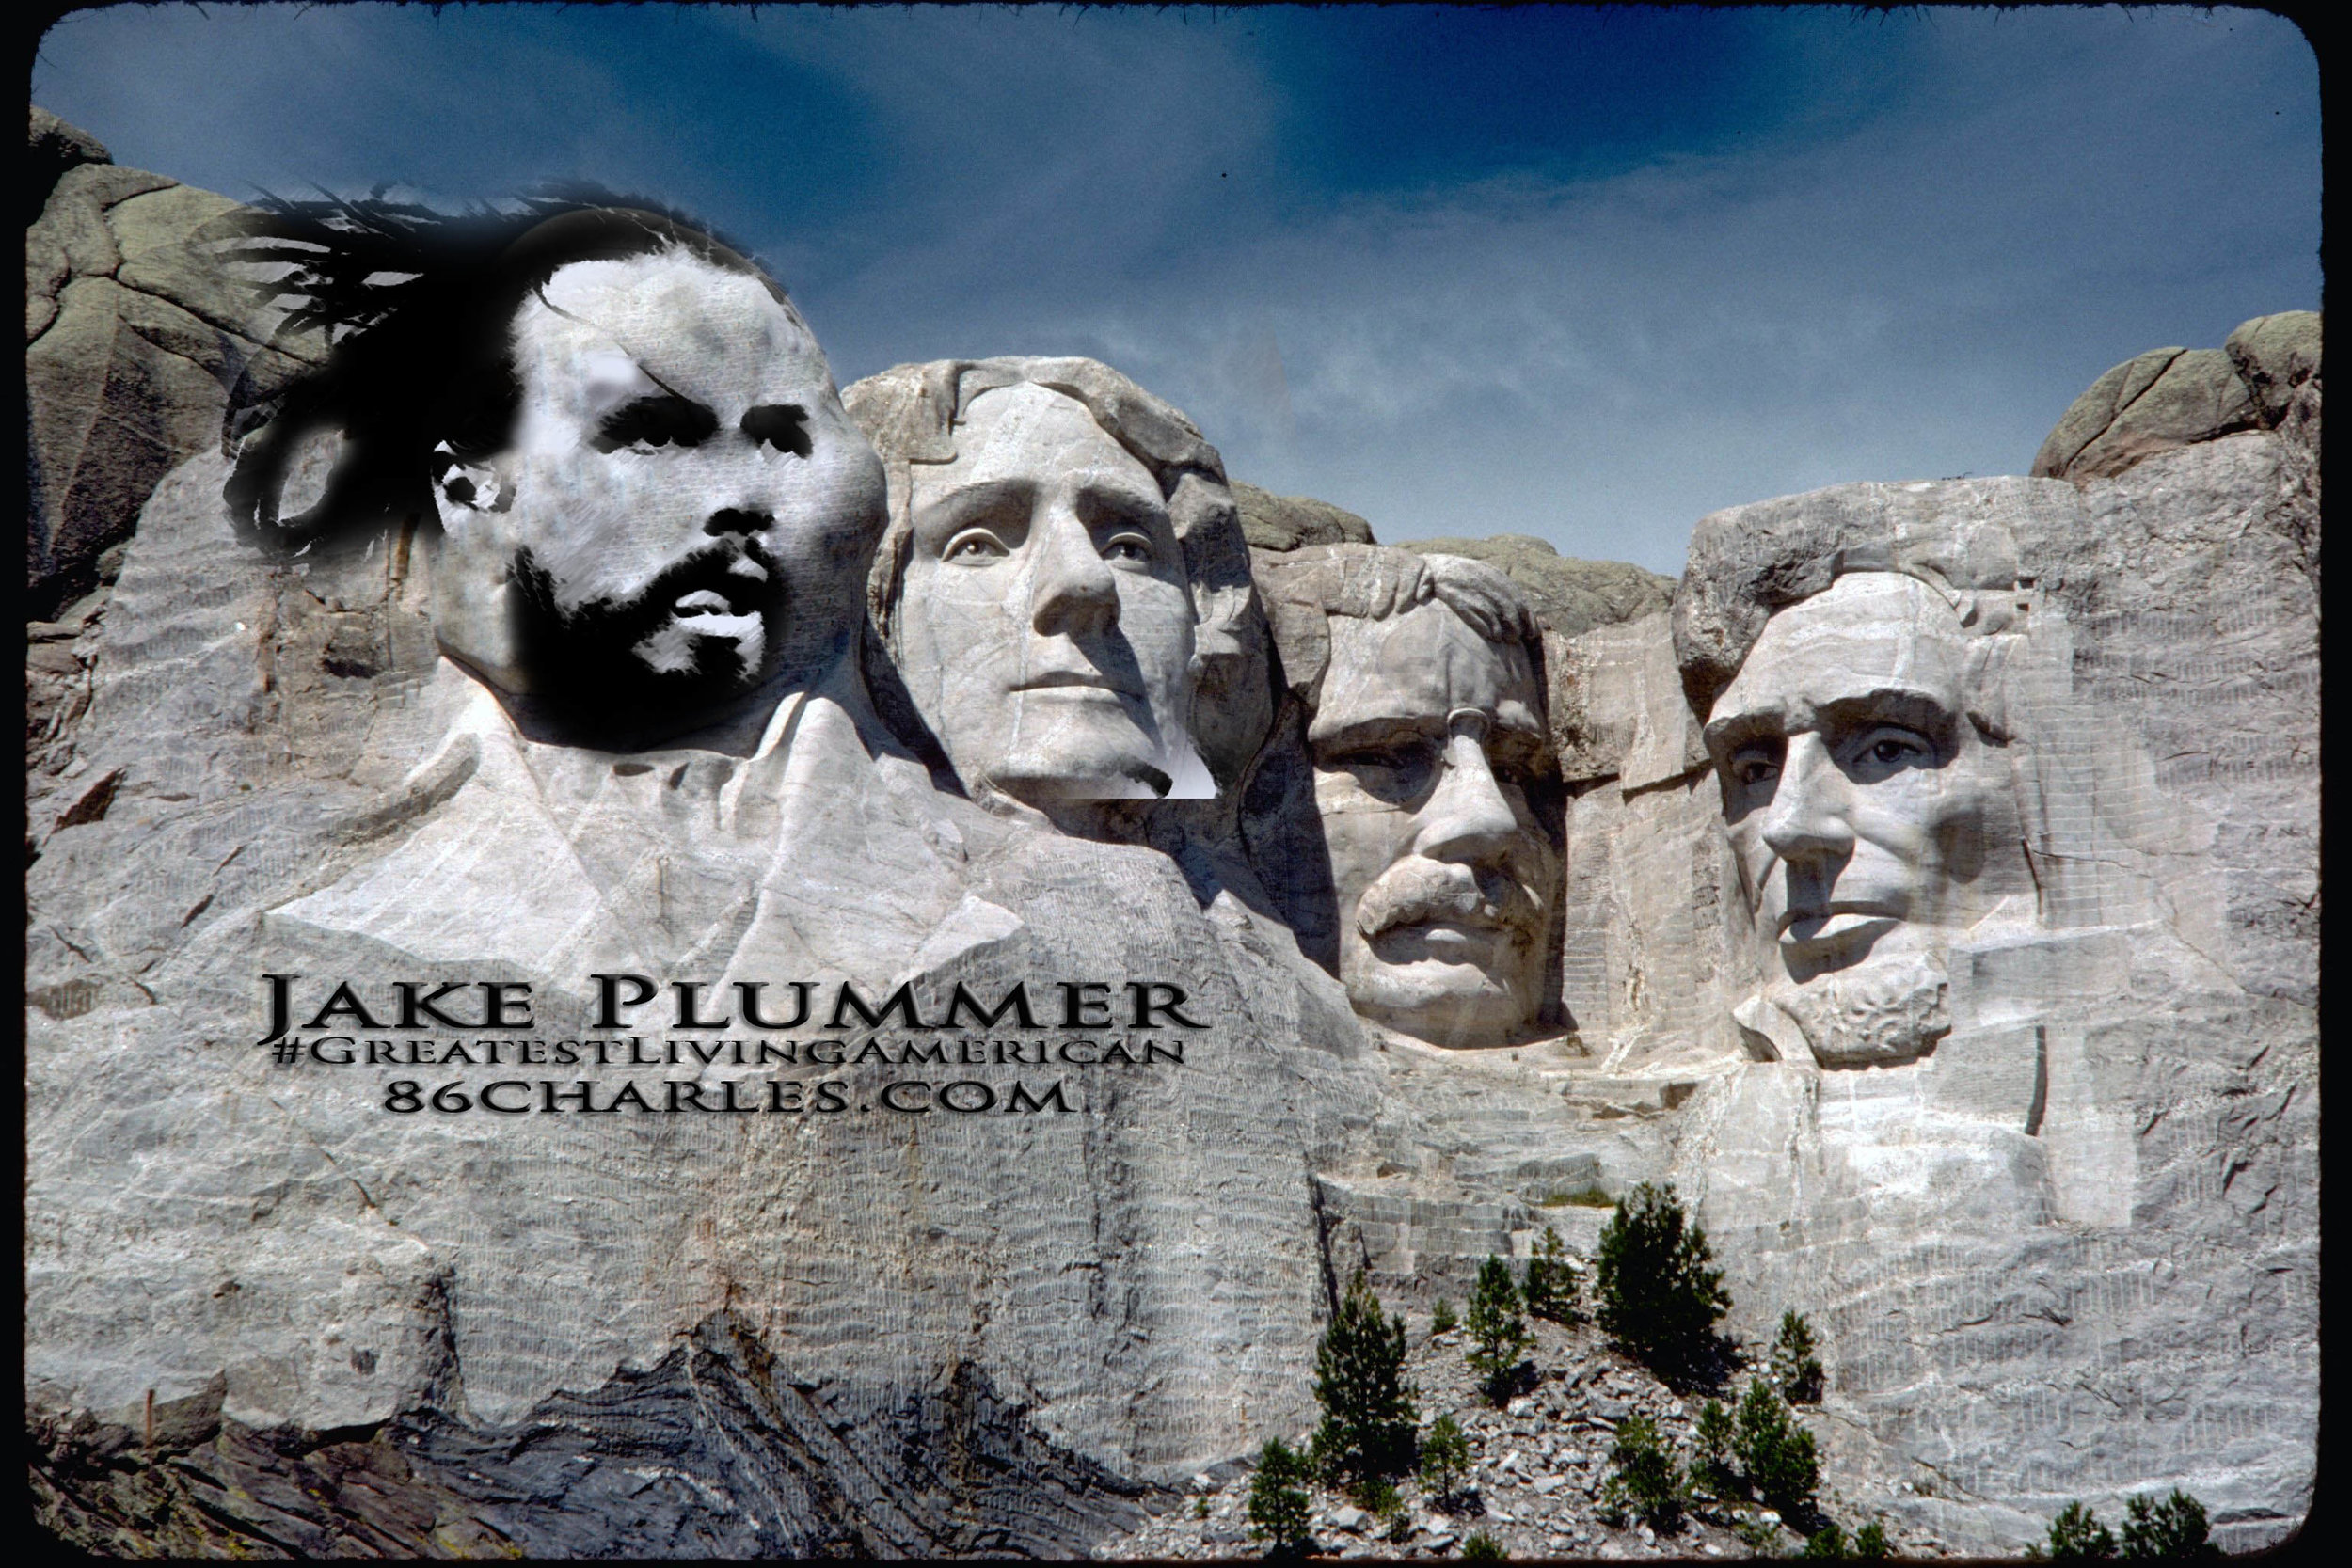 Jake Plummer #GreatestLivingAmerican